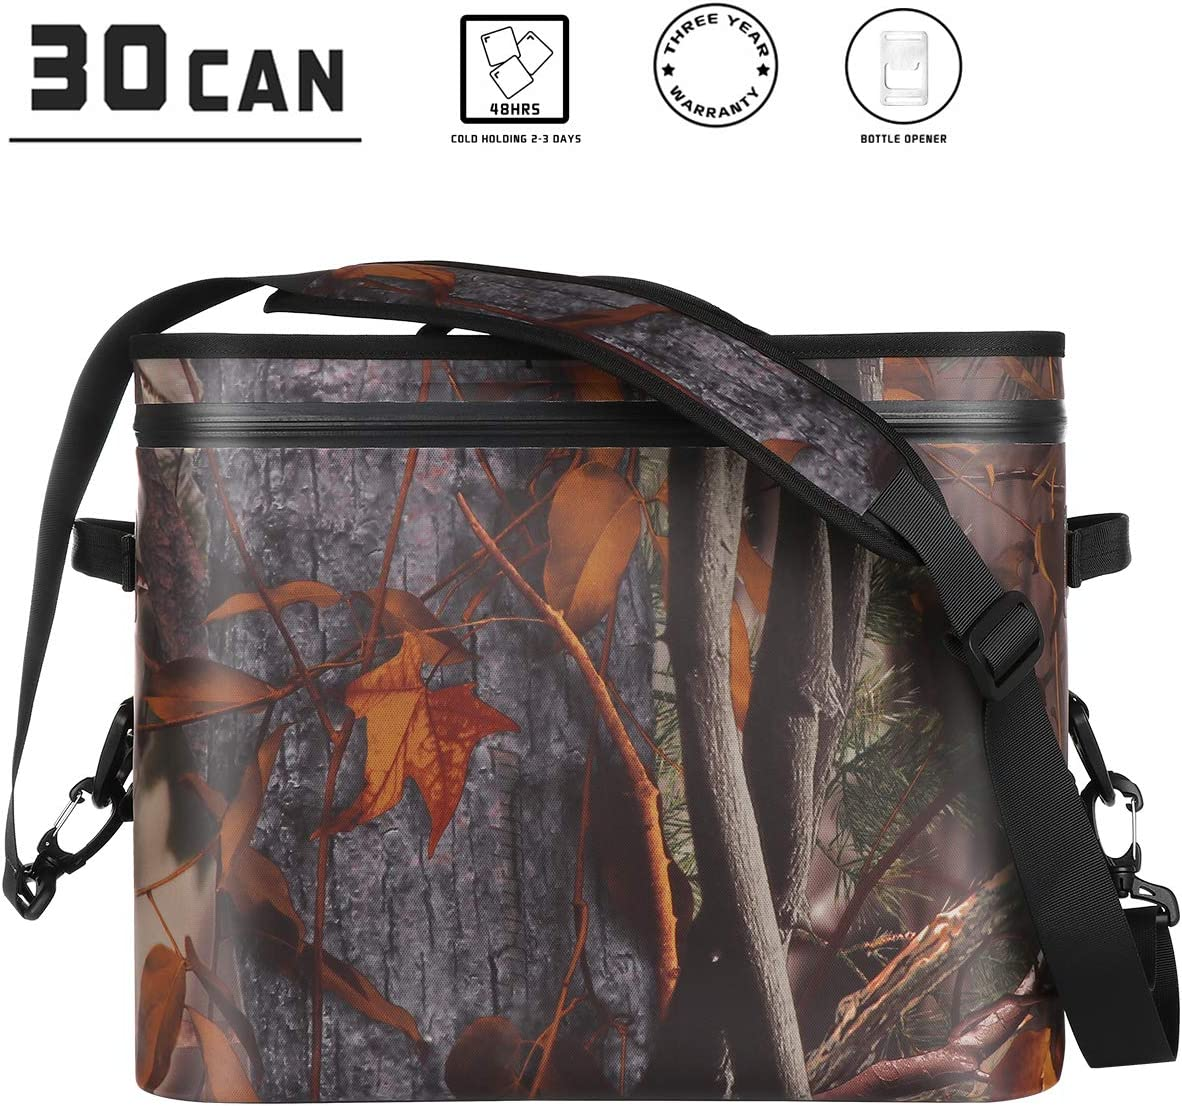 Picnic Fishing Party Soft Cooler Bag Tote Portable Large Beach Cooler 20L Insulated Leak /& Waterproof High Ice Retention Pack Cooler for Car Sports Camping Hiking Floating Camouflage